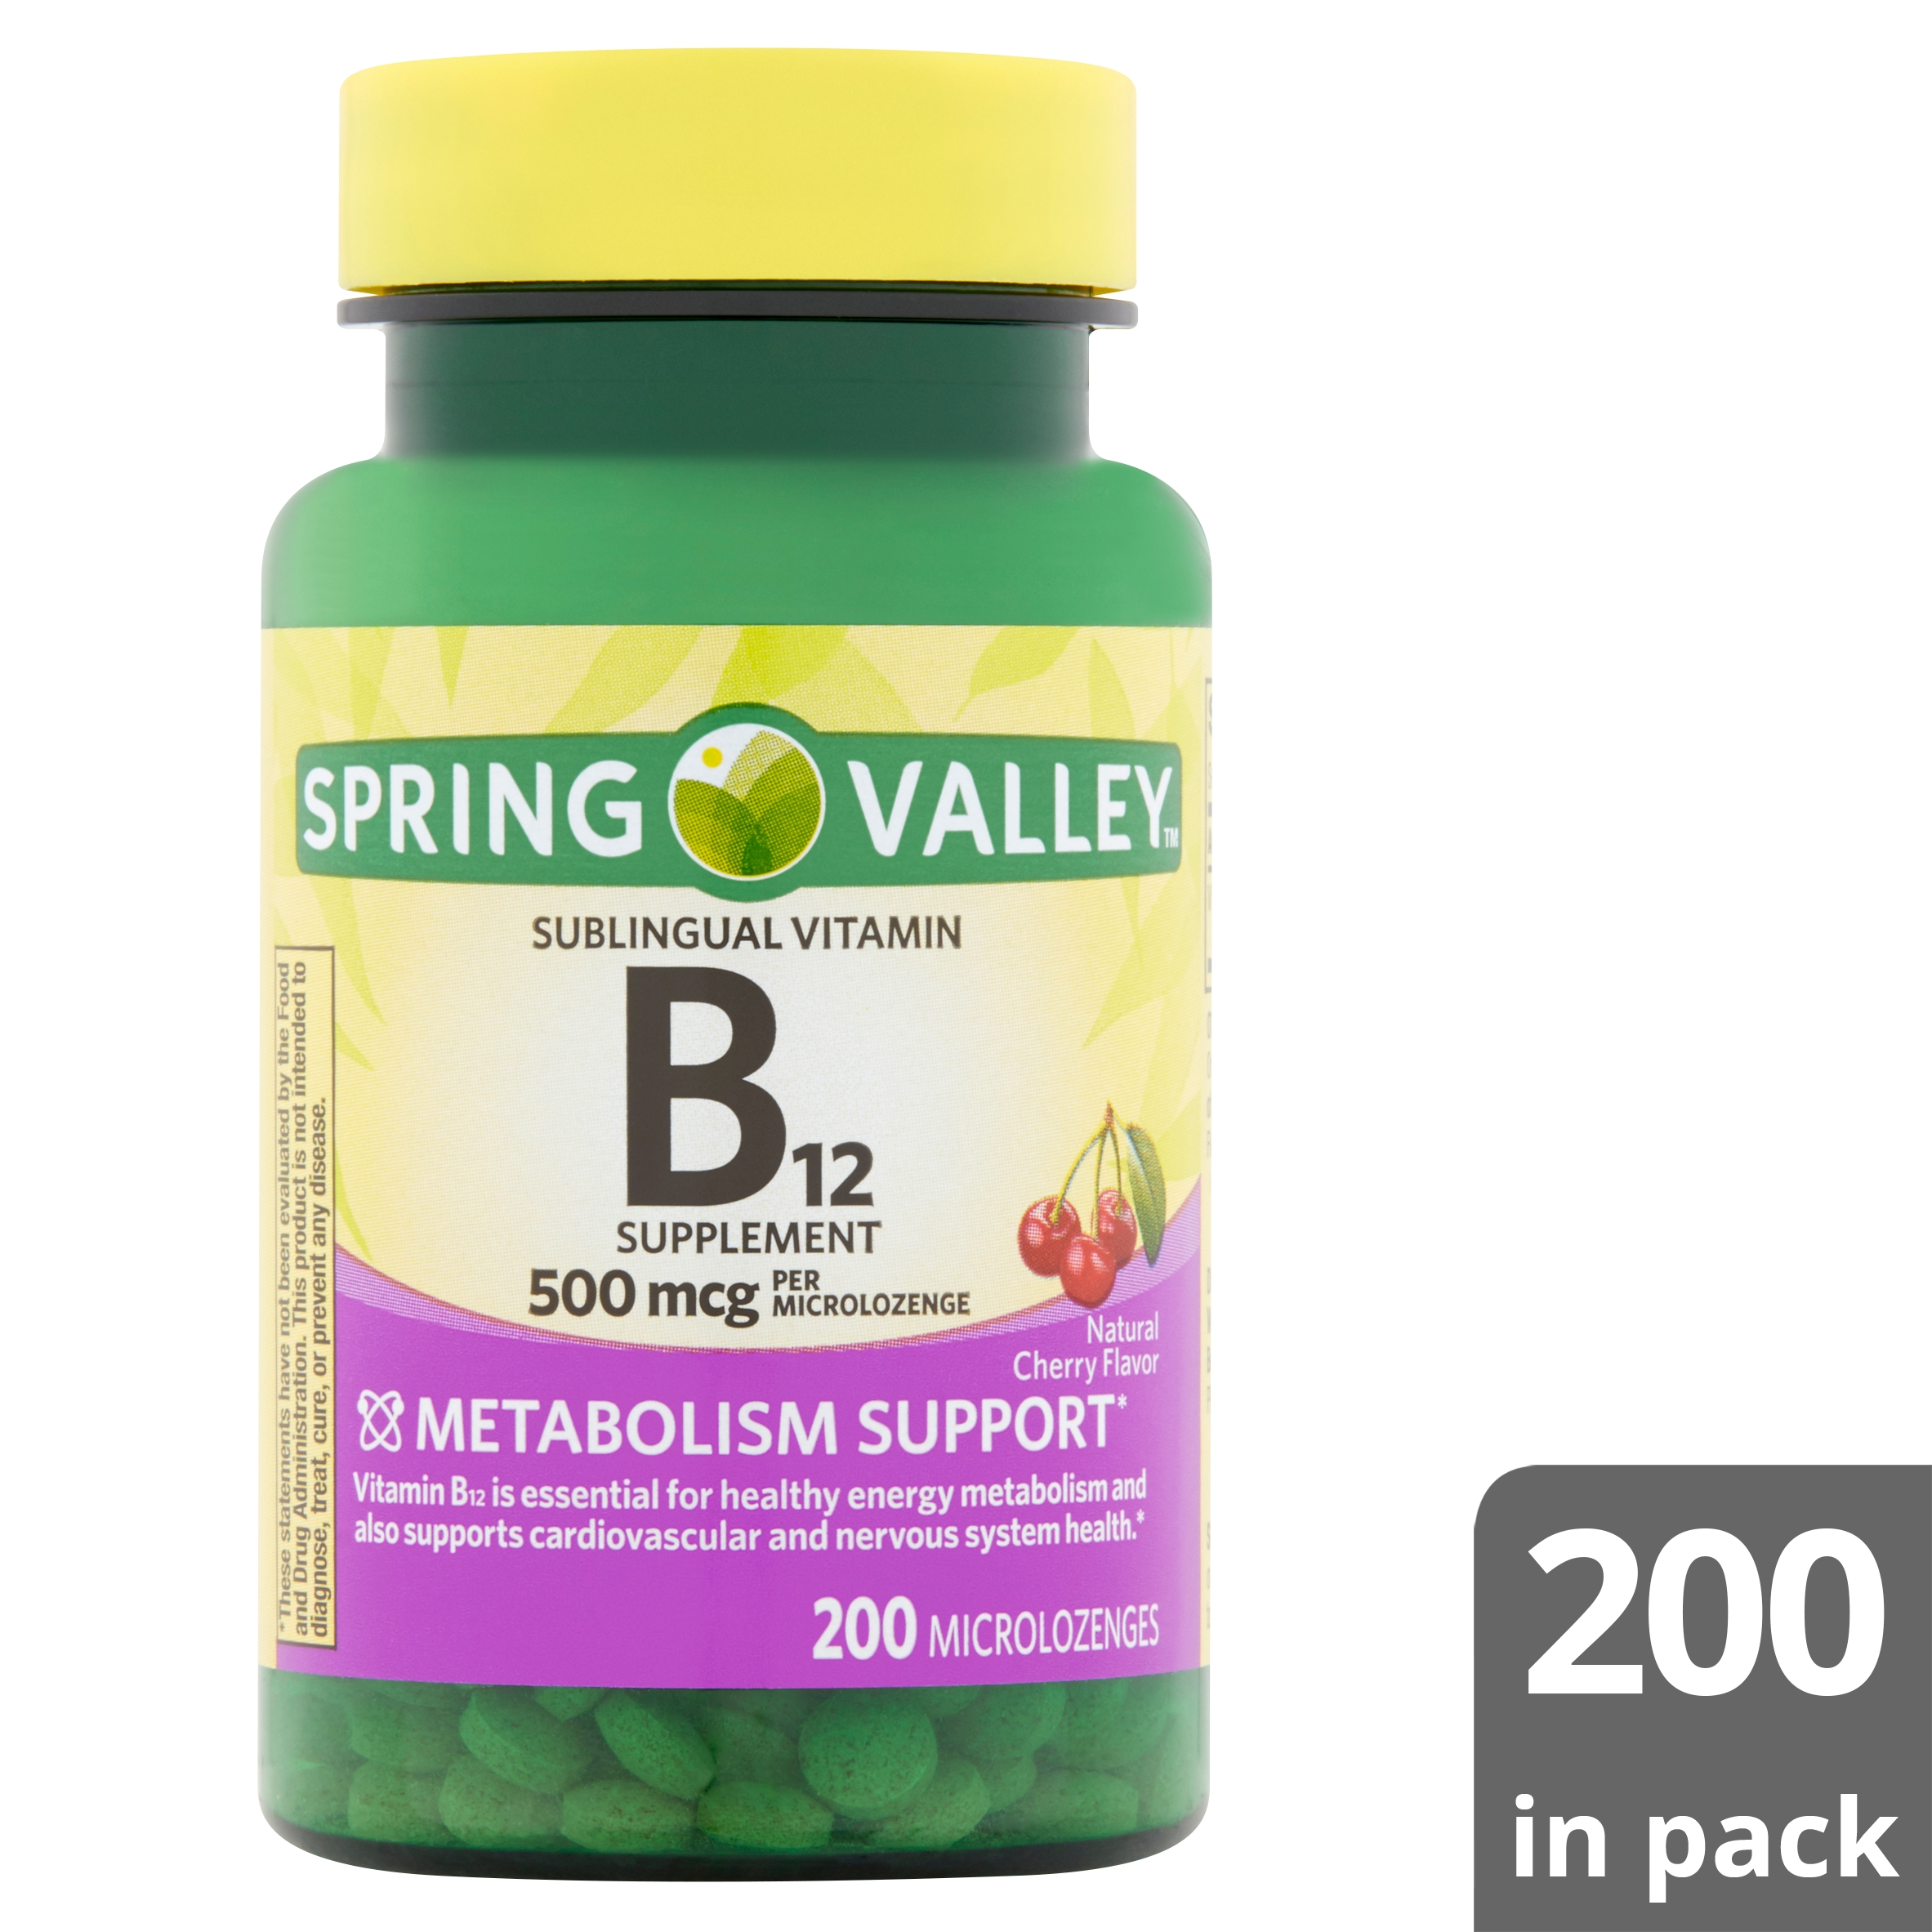 Spring Valley Natural Cherry Flavor B12 Supplement Microlozenges